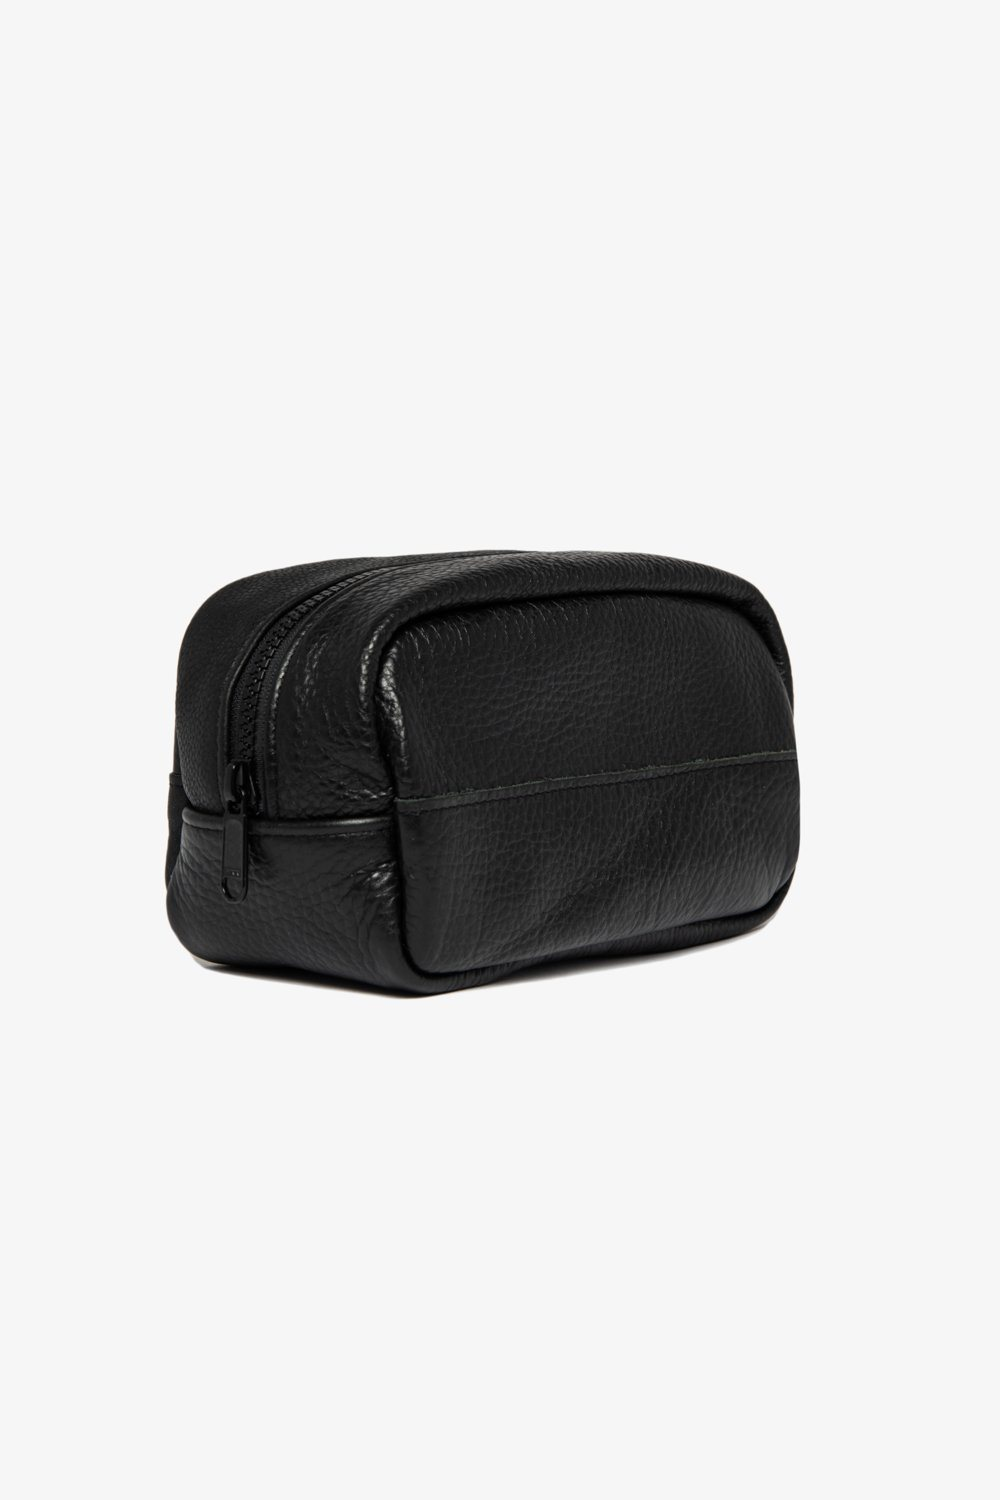 Presley Leather Travel Kit - Black Jack + Mulligan